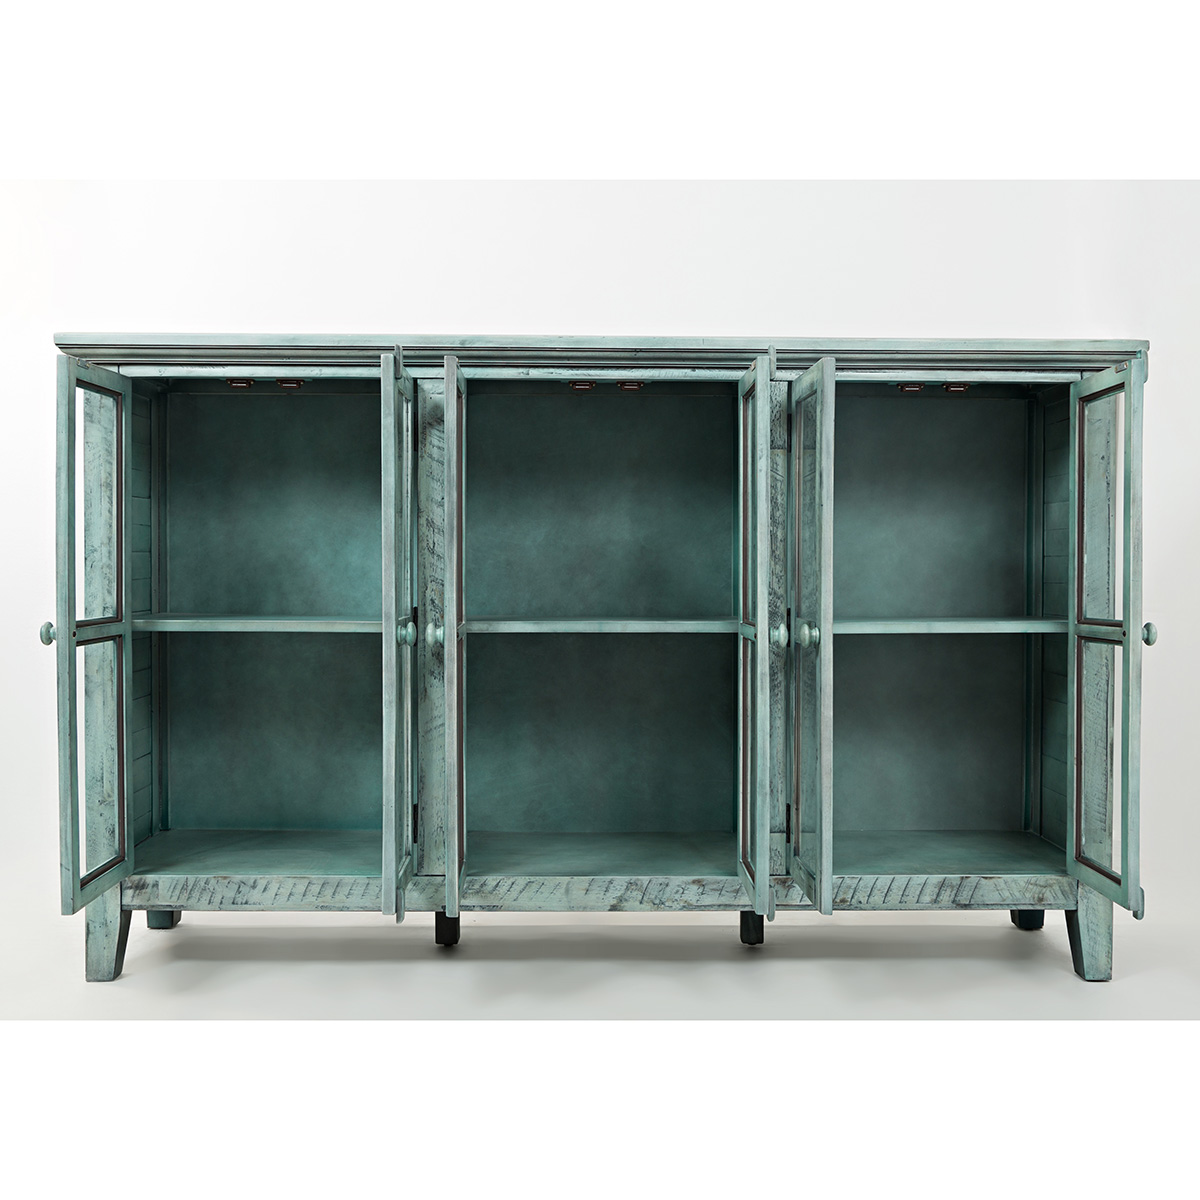 Accent cabinet with glass doors - Rustic Shores Surfside 70 Accent Cabinet In Distressed Vintage Blue W Glass Doors